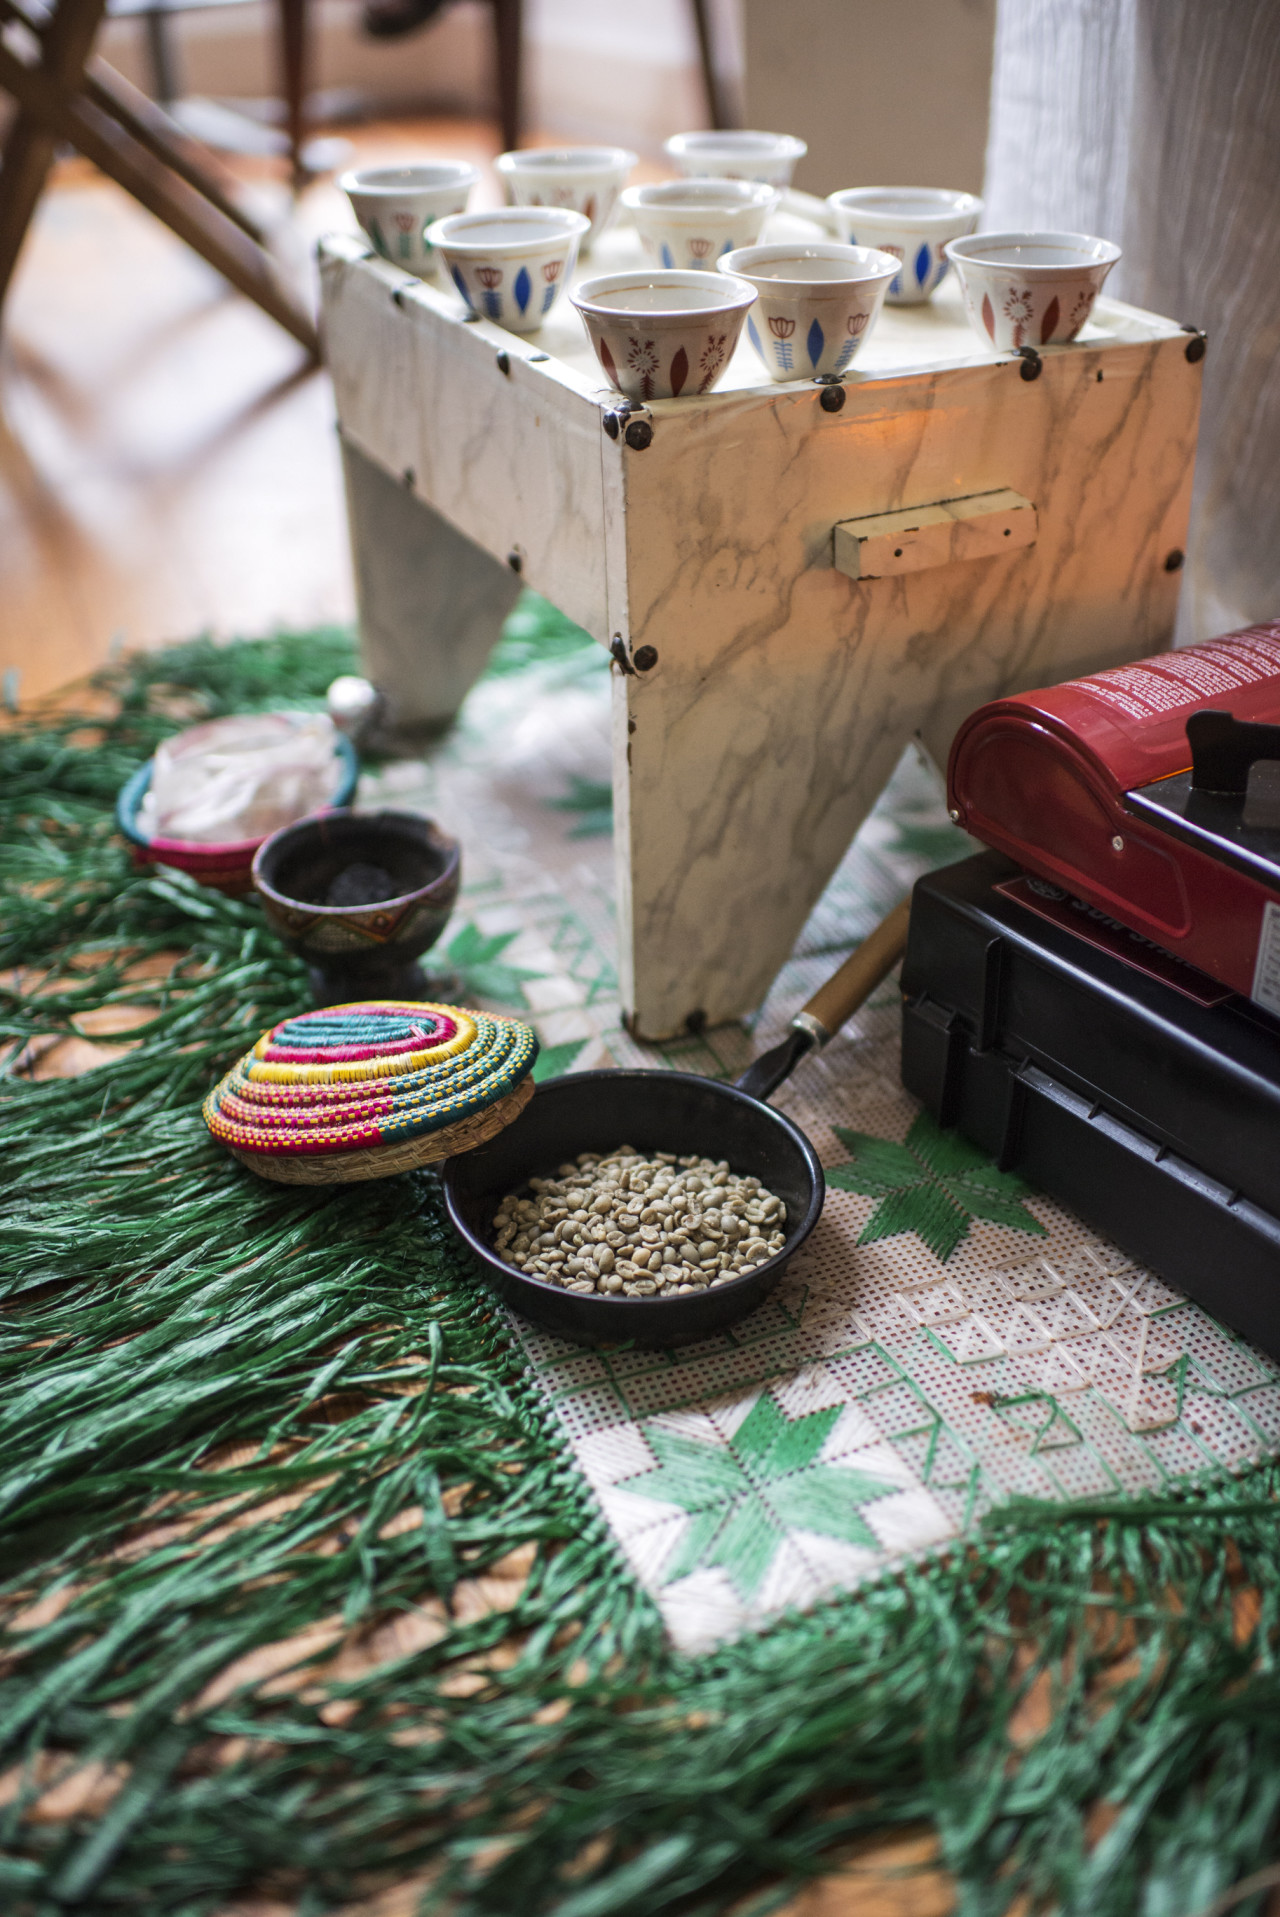 Coffee ceremony station